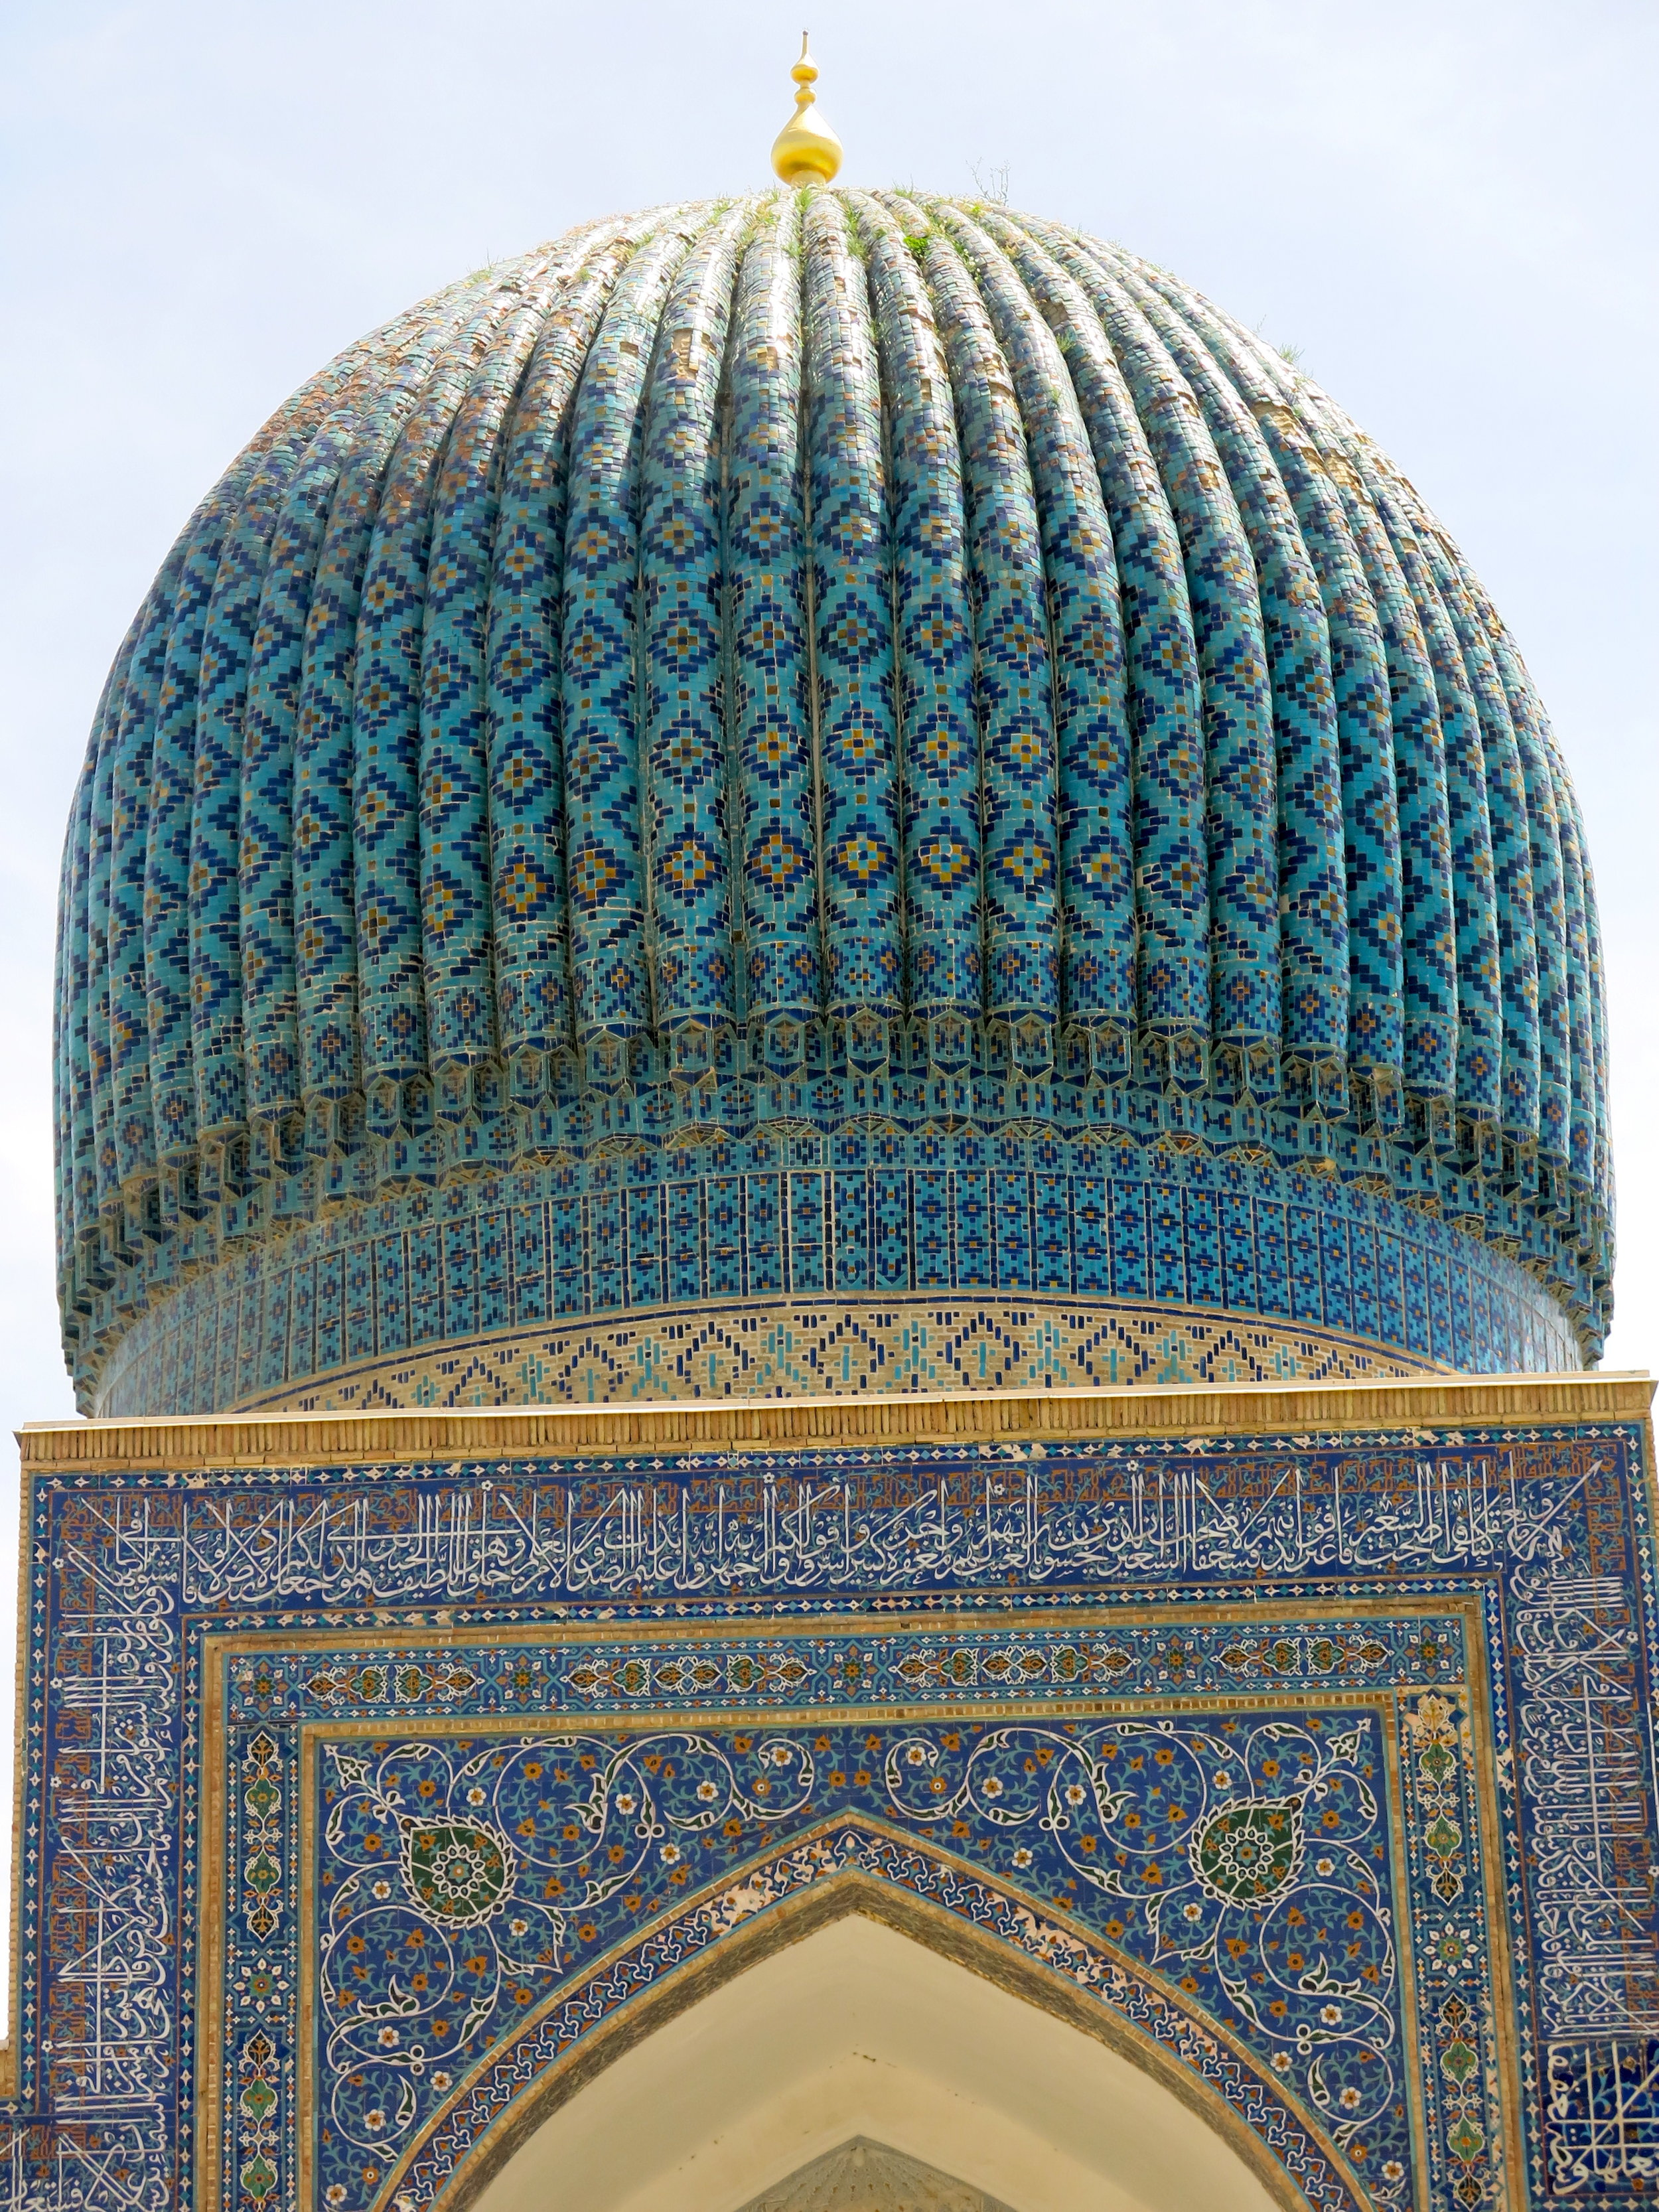 Gur-Emir hosts the remains of mighty ruler Amir Timur (Tamerlane in English)